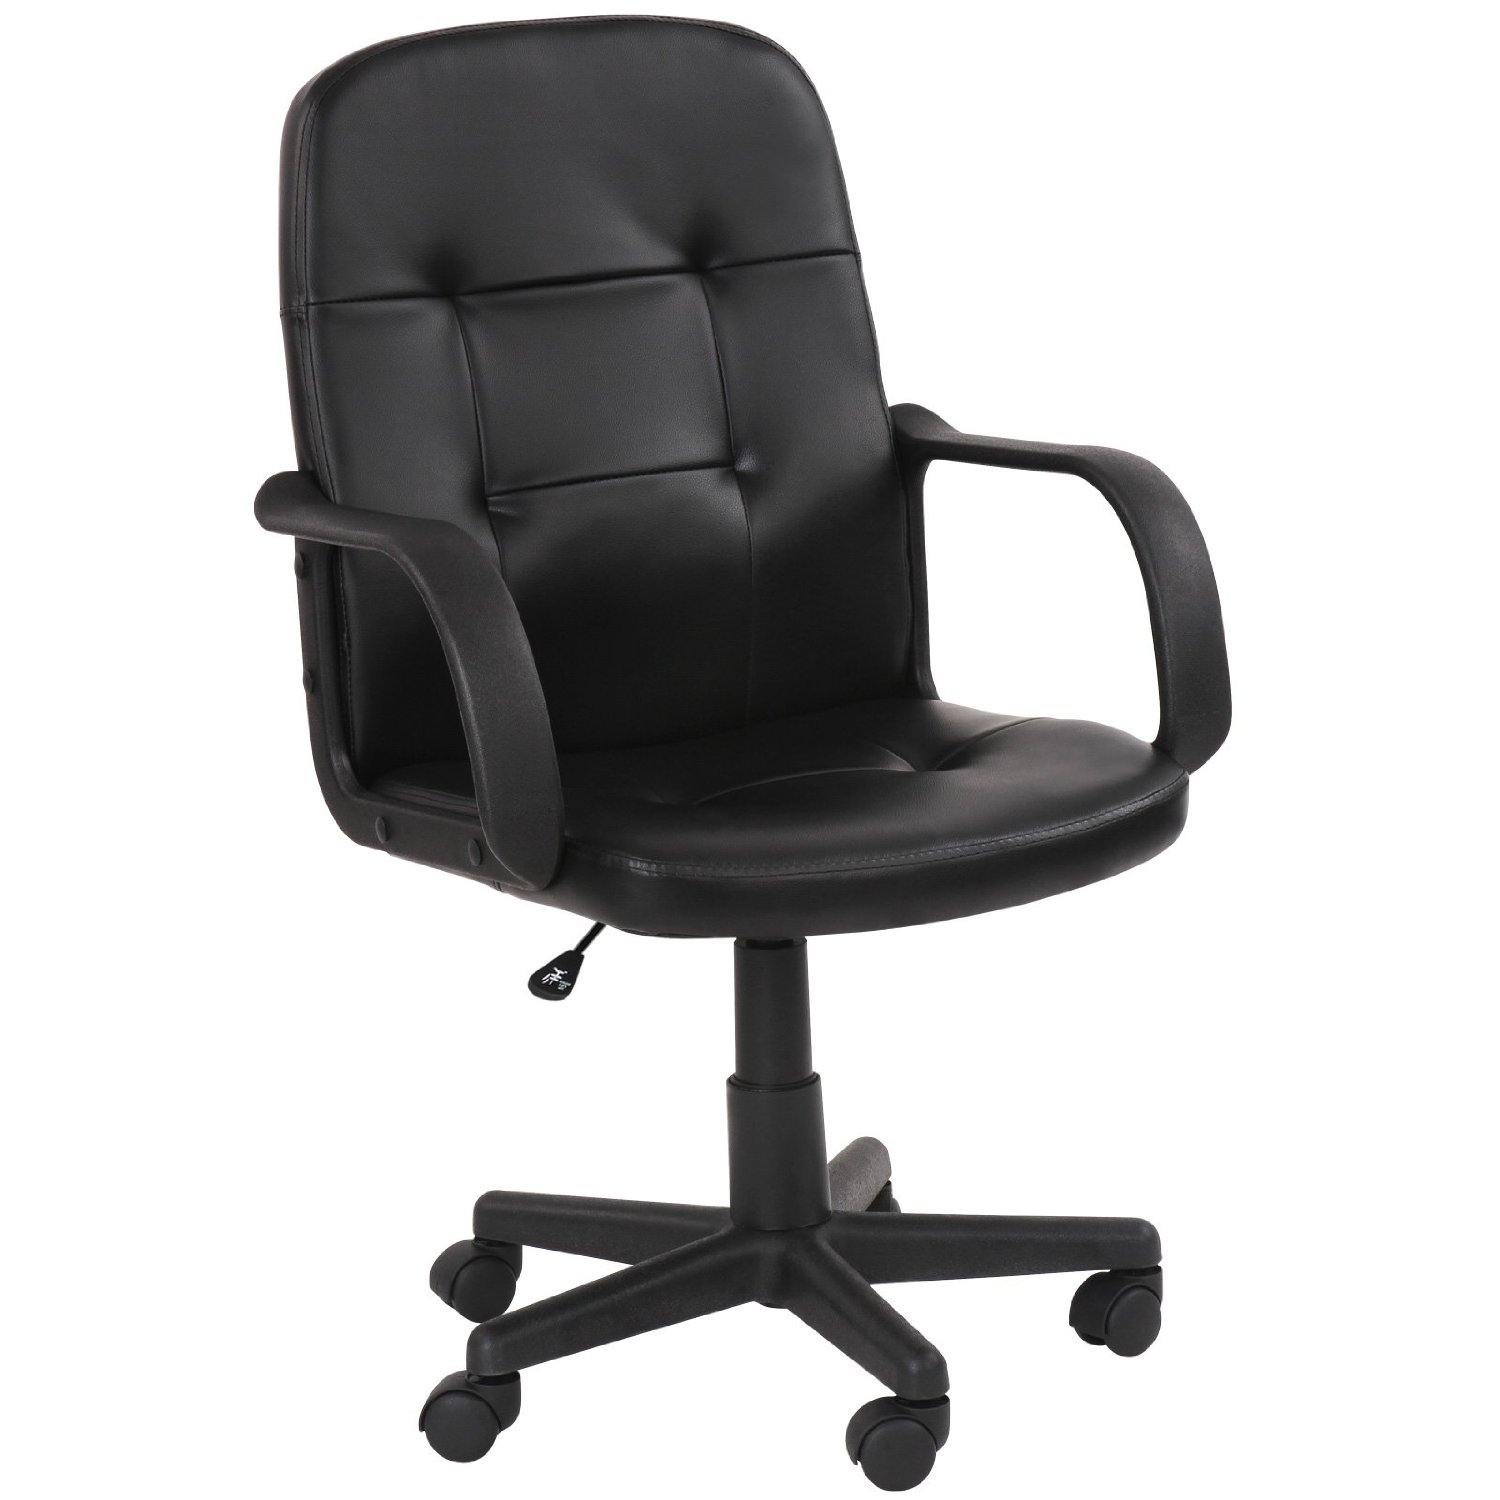 Ergonomic Swivel Office Chair Miadomodo Office Swivel Chair Black Ergonomic Height